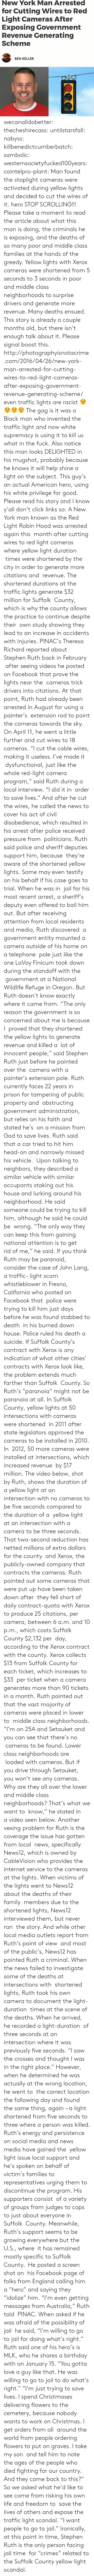 dysfunctional: New York Man Arrested  for Cutting Wires to Red  Light Cameras After  Exposing Government  Revenue Generating  Scheme  BEN KELLER wecanalldobetter: thecheshirecass:  untilstarsfall:   nabyss:  killbenedictcumberbatch:  sambolic:  westernsocietyfucked100years:  cointelpro-plant: Man found the stoplight cameras were activated during yellow lights and decided to cut the wires of it. hero  STOP SCROLLING!!! Please take a moment to read the article about what this man is doing, the criminals he is exposing, and the deaths of so many poor and middle class families at the hands of the greedy. Yellow lights with Xerox cameras were shortened from 5 seconds to 3 seconds in poor and middle class neighborhoods to surprise drivers and generate more revenue. Many deaths ensued. This story is already a couple months old, but there isn't enough talk about it. Please signal boost this. http://photographyisnotacrime.com/2016/04/26/new-york-man-arrested-for-cutting-wires-to-red-light-cameras-after-exposing-government-revenue-generating-scheme/   even traffic lights are racist  😧😧😧😧  The gag is it was a Black man who invented the traffic light and now white supremacy is using it to kill us what in the fuck.   Also notice this man looks DELIGHTED in his mugshot, probably because he knows it will help shine a light on the subject.  This guy's an actual American hero, using his white privilege for good. Please read his story and I know y'all don't click links so:  A New York man known as the Red Light Robin Hood was arrested again this month after cutting wires to red light cameras where yellow light duration times were shortened by the city in order to generate more citations and revenue.  The shortened durations at the traffic lights generate $32 million for Suffolk County, which is why the county allows the practice to continue despite their own study showing they lead to an increase in accidents with injuries.  PINAC's Theresa Richard reported about Stephen Ruth back in